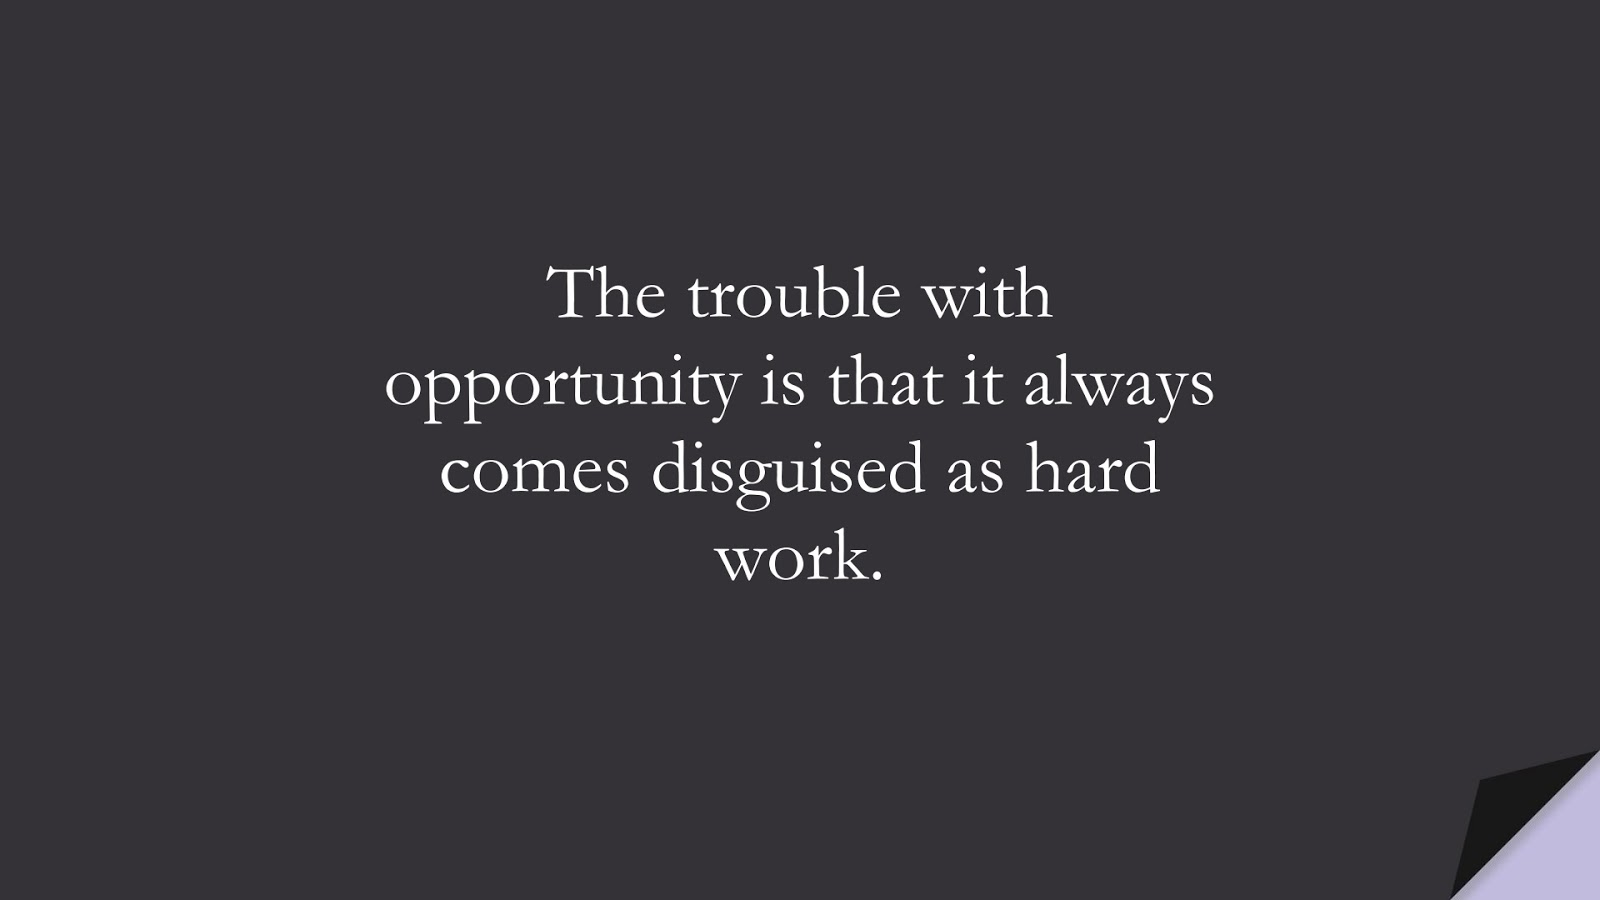 The trouble with opportunity is that it always comes disguised as hard work.FALSE